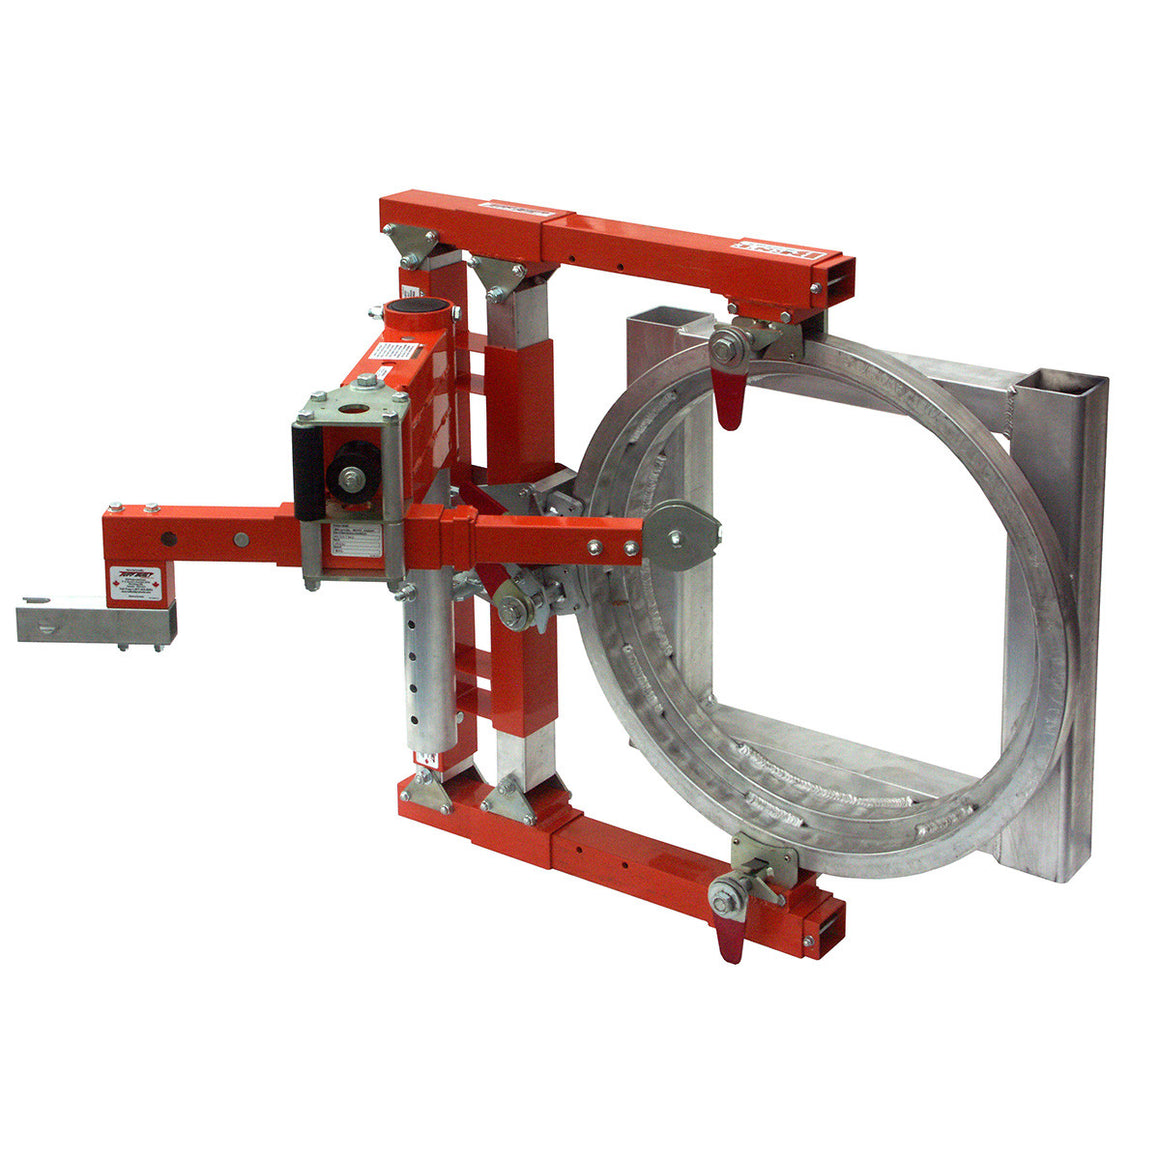 Horizontal Entry - Clamping Base and Arm Assembly